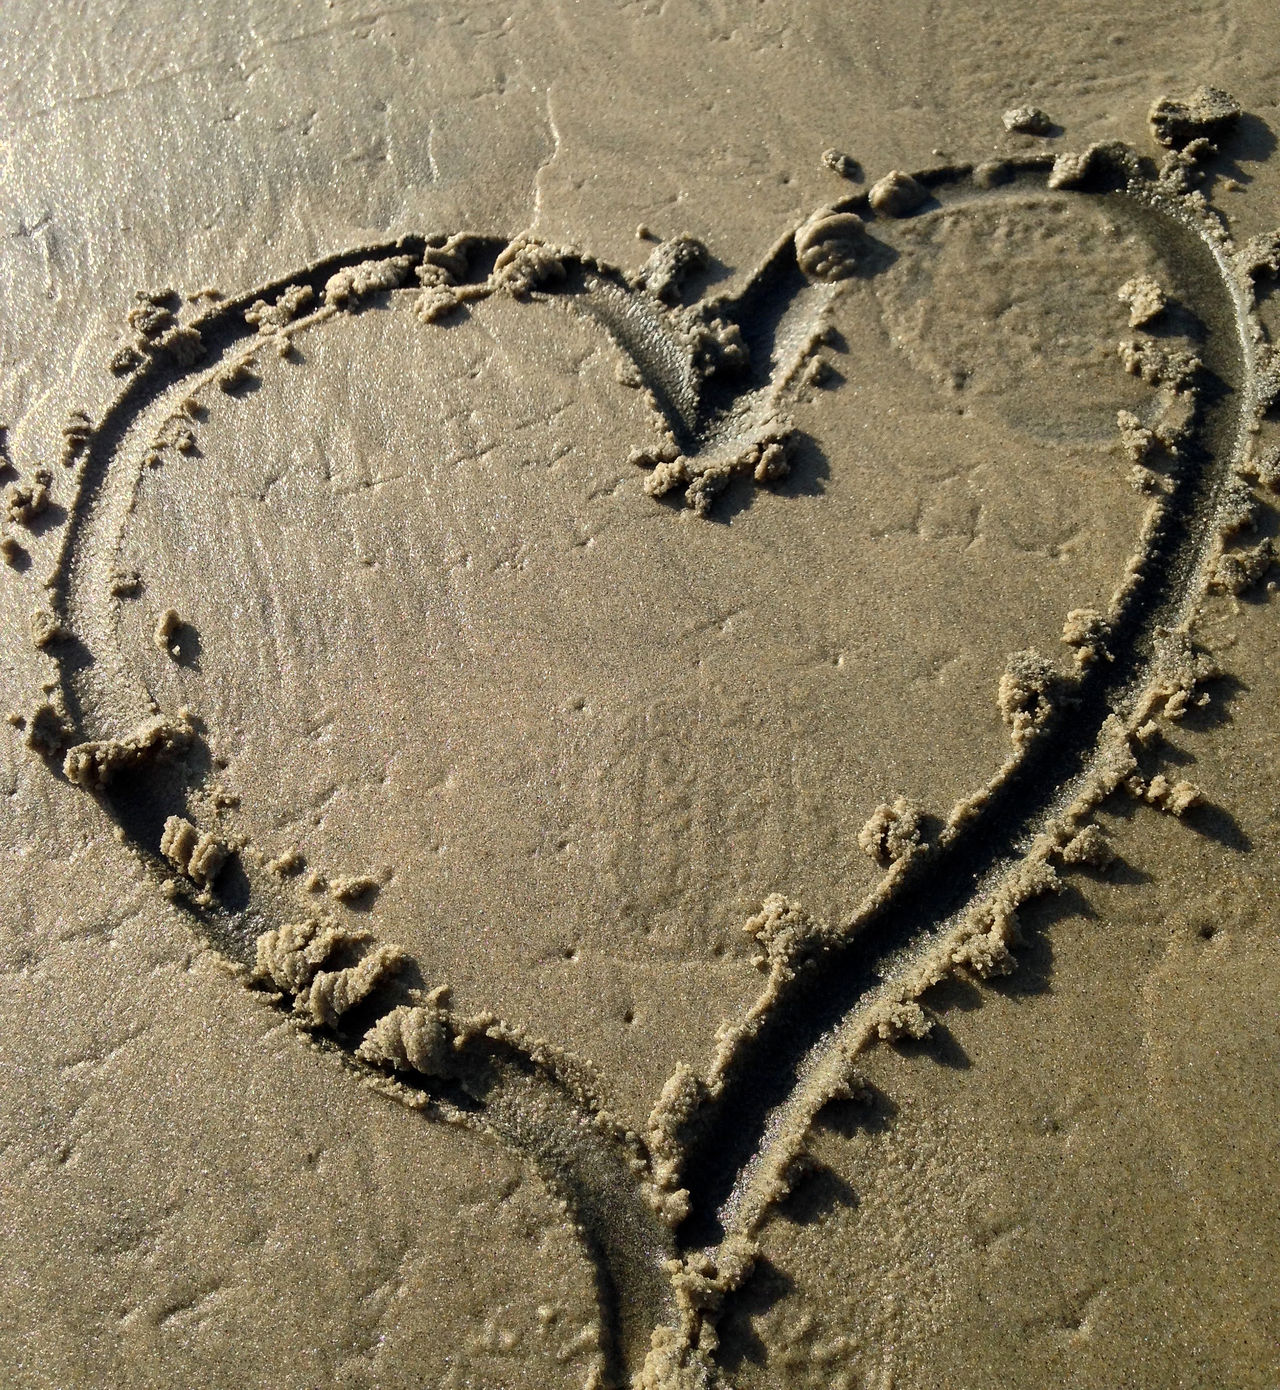 Beach heart Beach Hear Beach Photography Heart Heart Drawn In The Sand Heart Shape Heart Shaped On The Bea Heartbeat Moments Love A Beach Day Sand